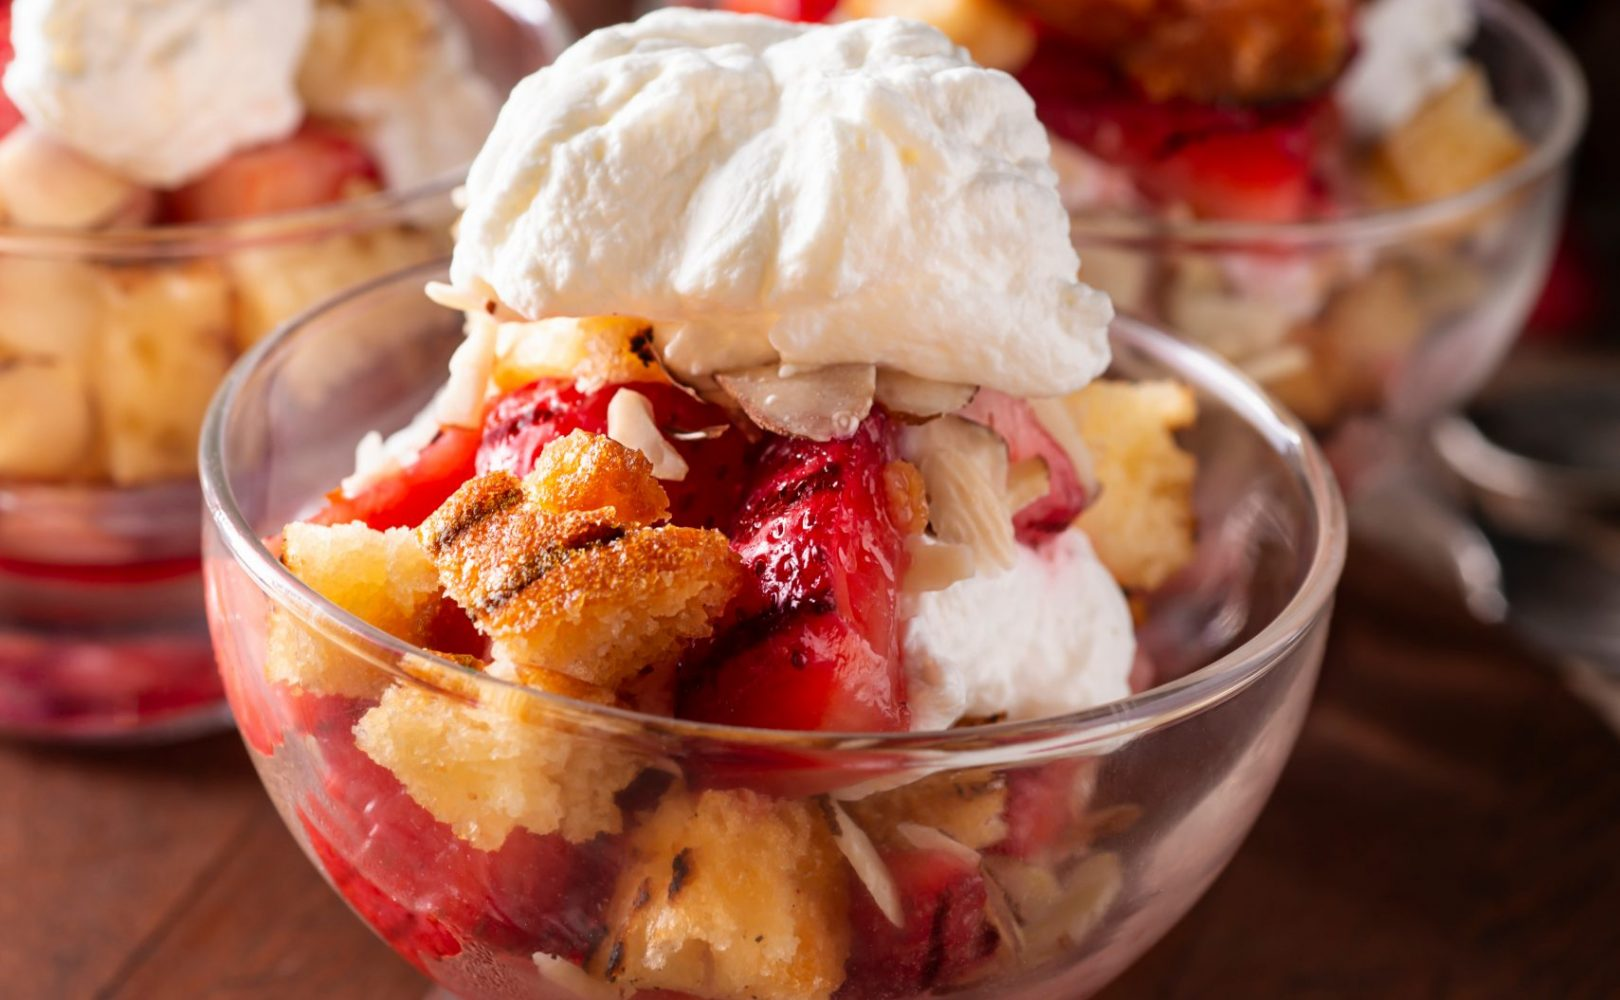 Strawberry Parfait with Whipped Cream